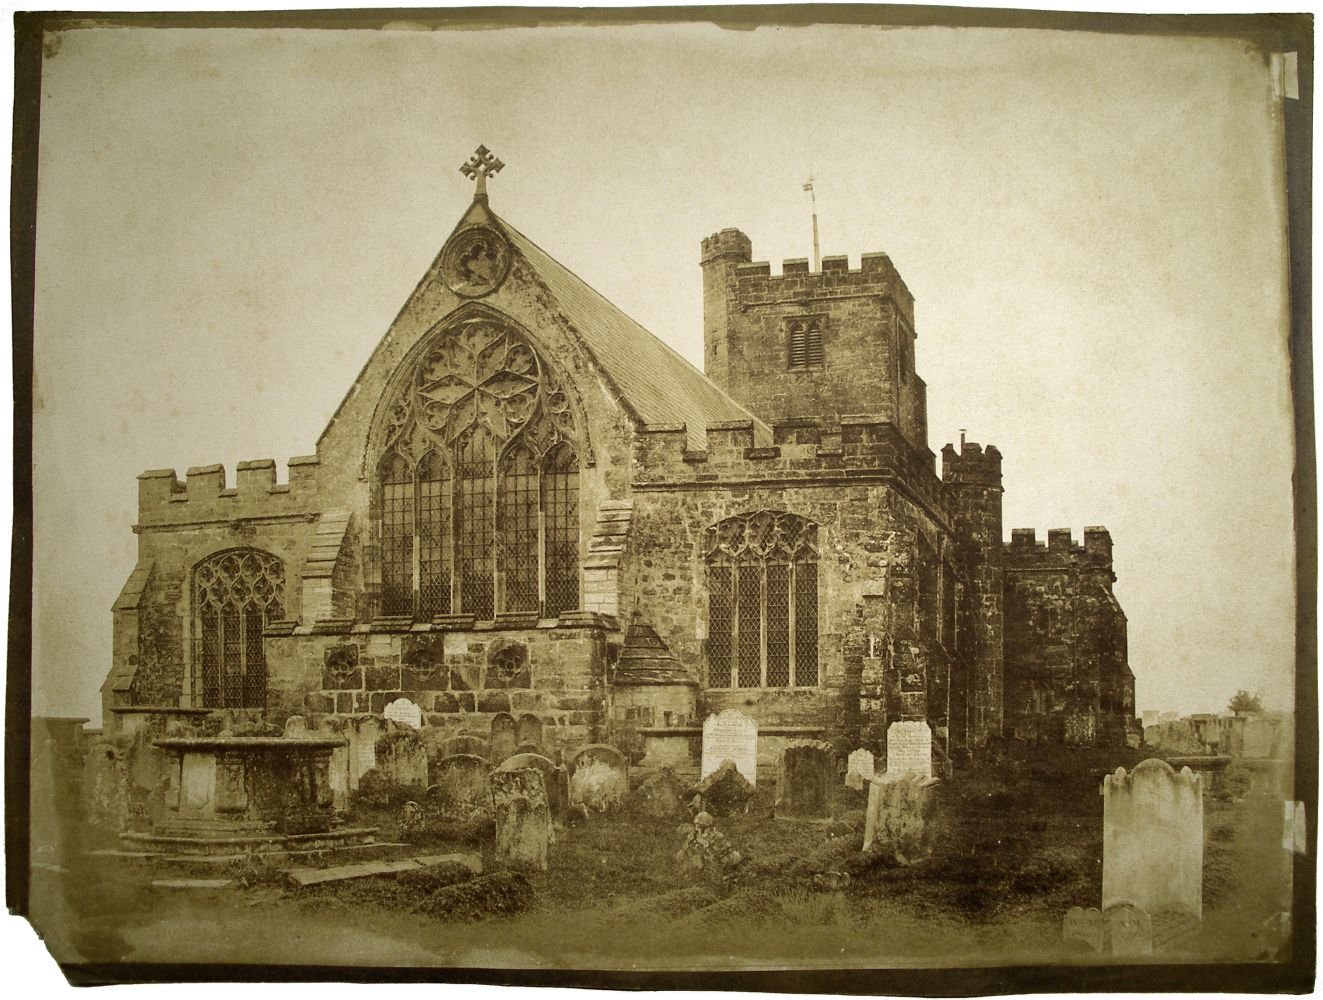 "Benjamin Brecknell TURNER (English, 1815-1894) East End ""Hawkhurst Church"" Kent*, 1852-1854 Salt print from a waxed calotype negative 29.9 x 39.8 cm on 31.4 x 41.6 cm paper Titled ""Hawkhurst Church"" in pencil on verso"